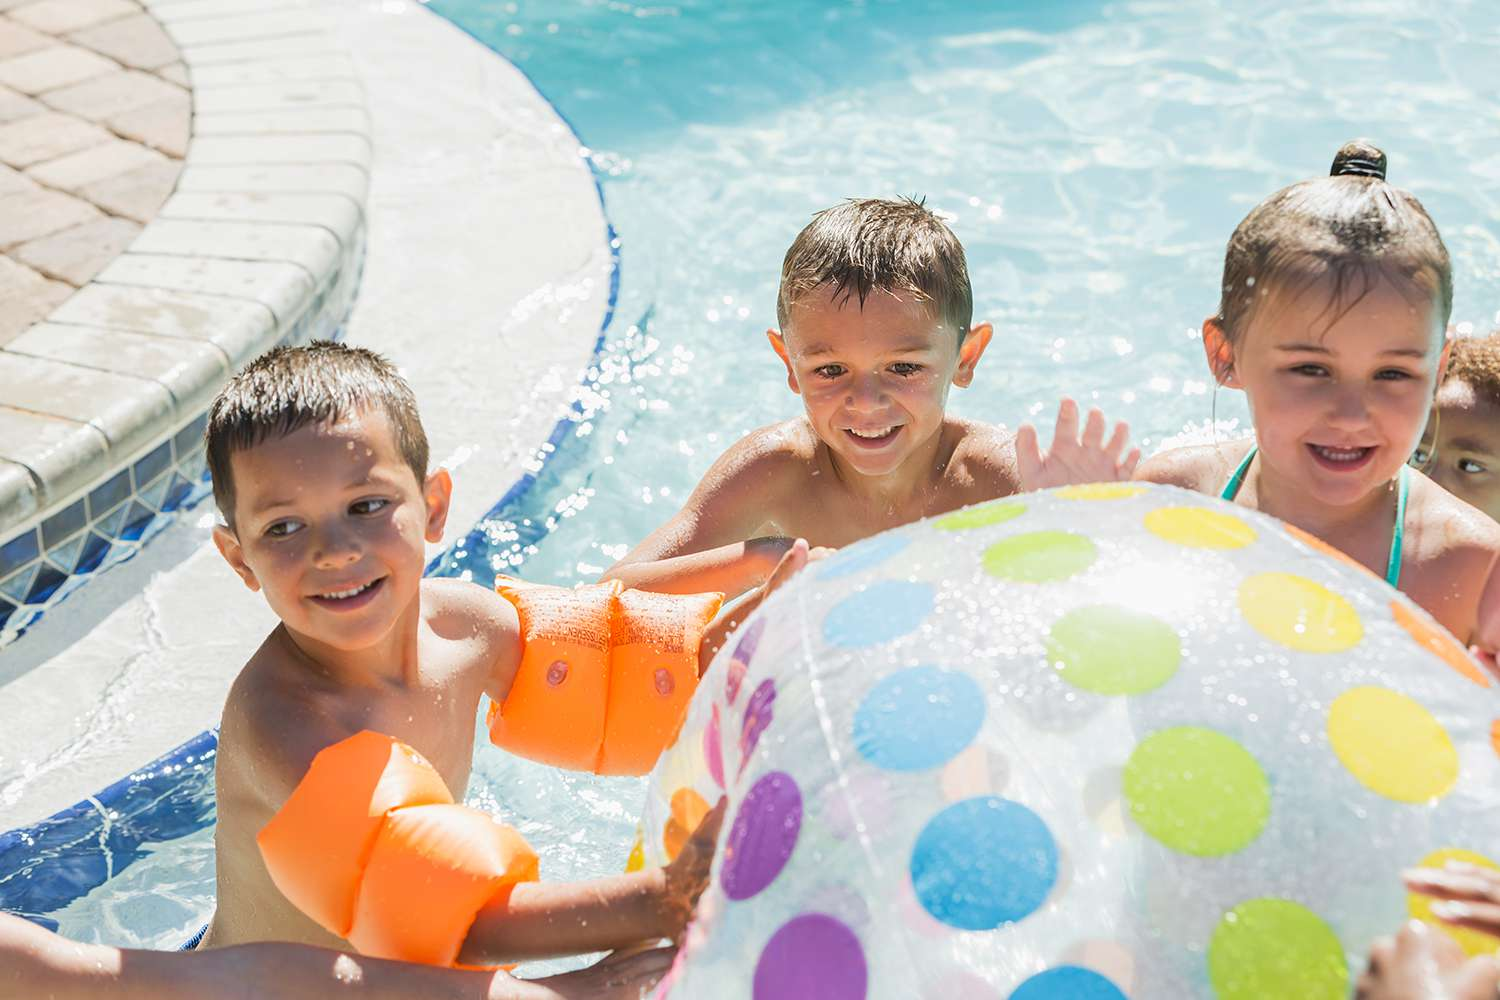 Multi-ethnic children with giant beach ball in pool